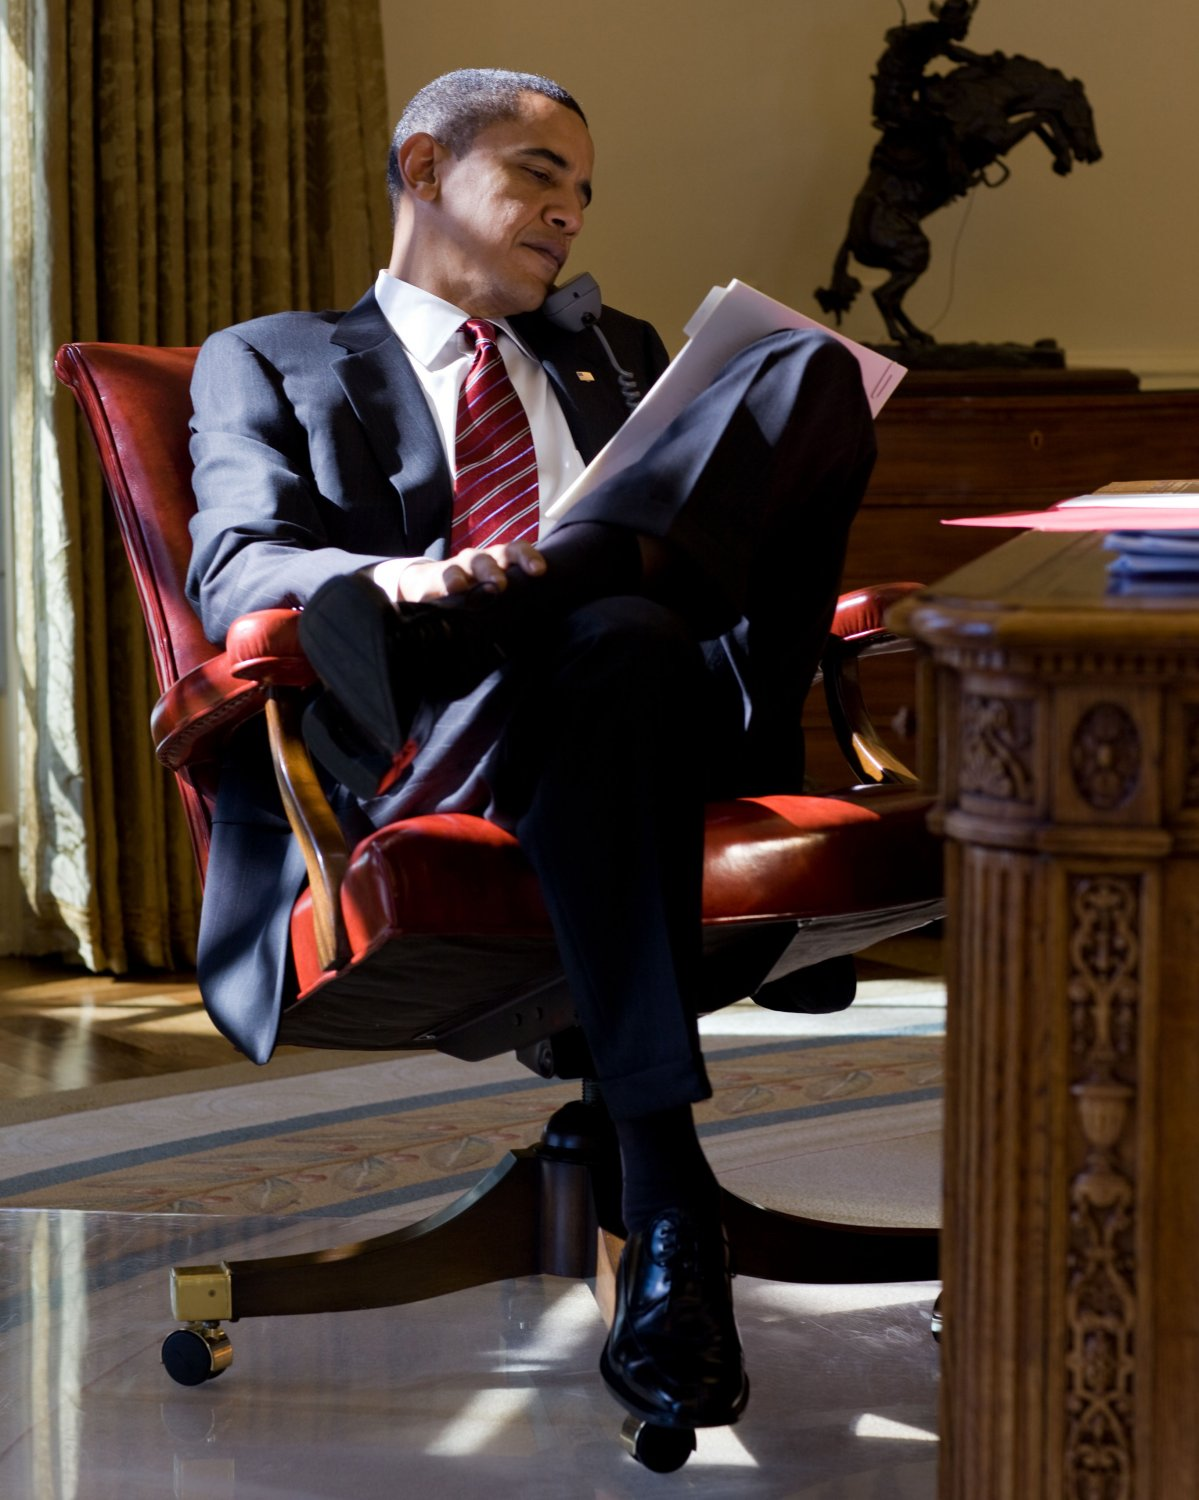 BARACK OBAMA REVIEWS PAPERWORK WHILE SPEAKING ON THE PHONE - 8X10 PHOTO (ZY-344)